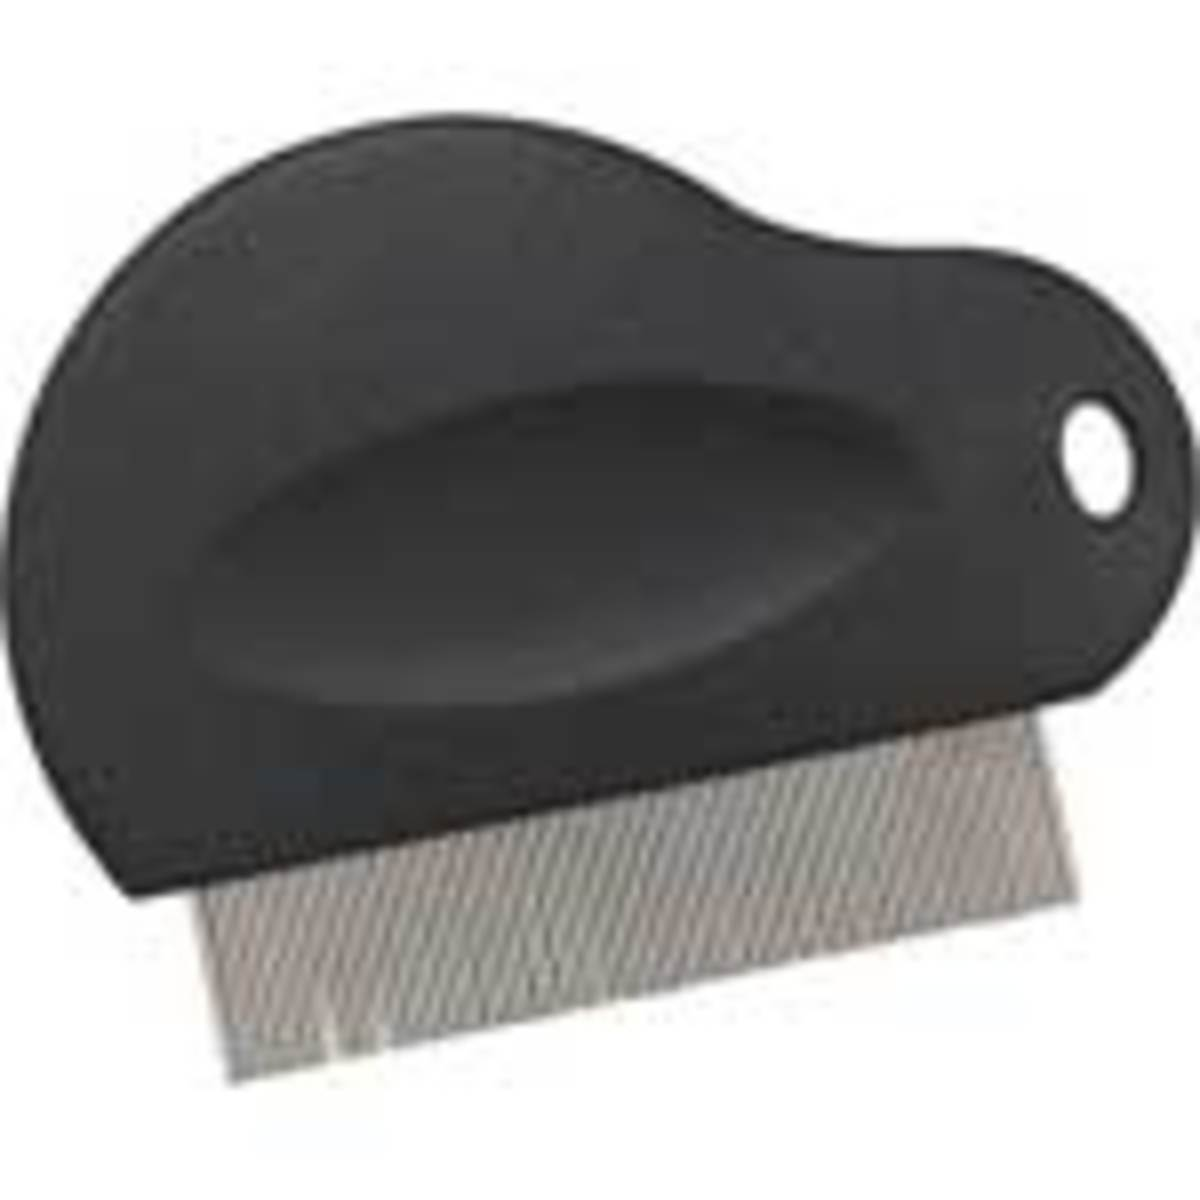 Flea Comb With Metal Tines